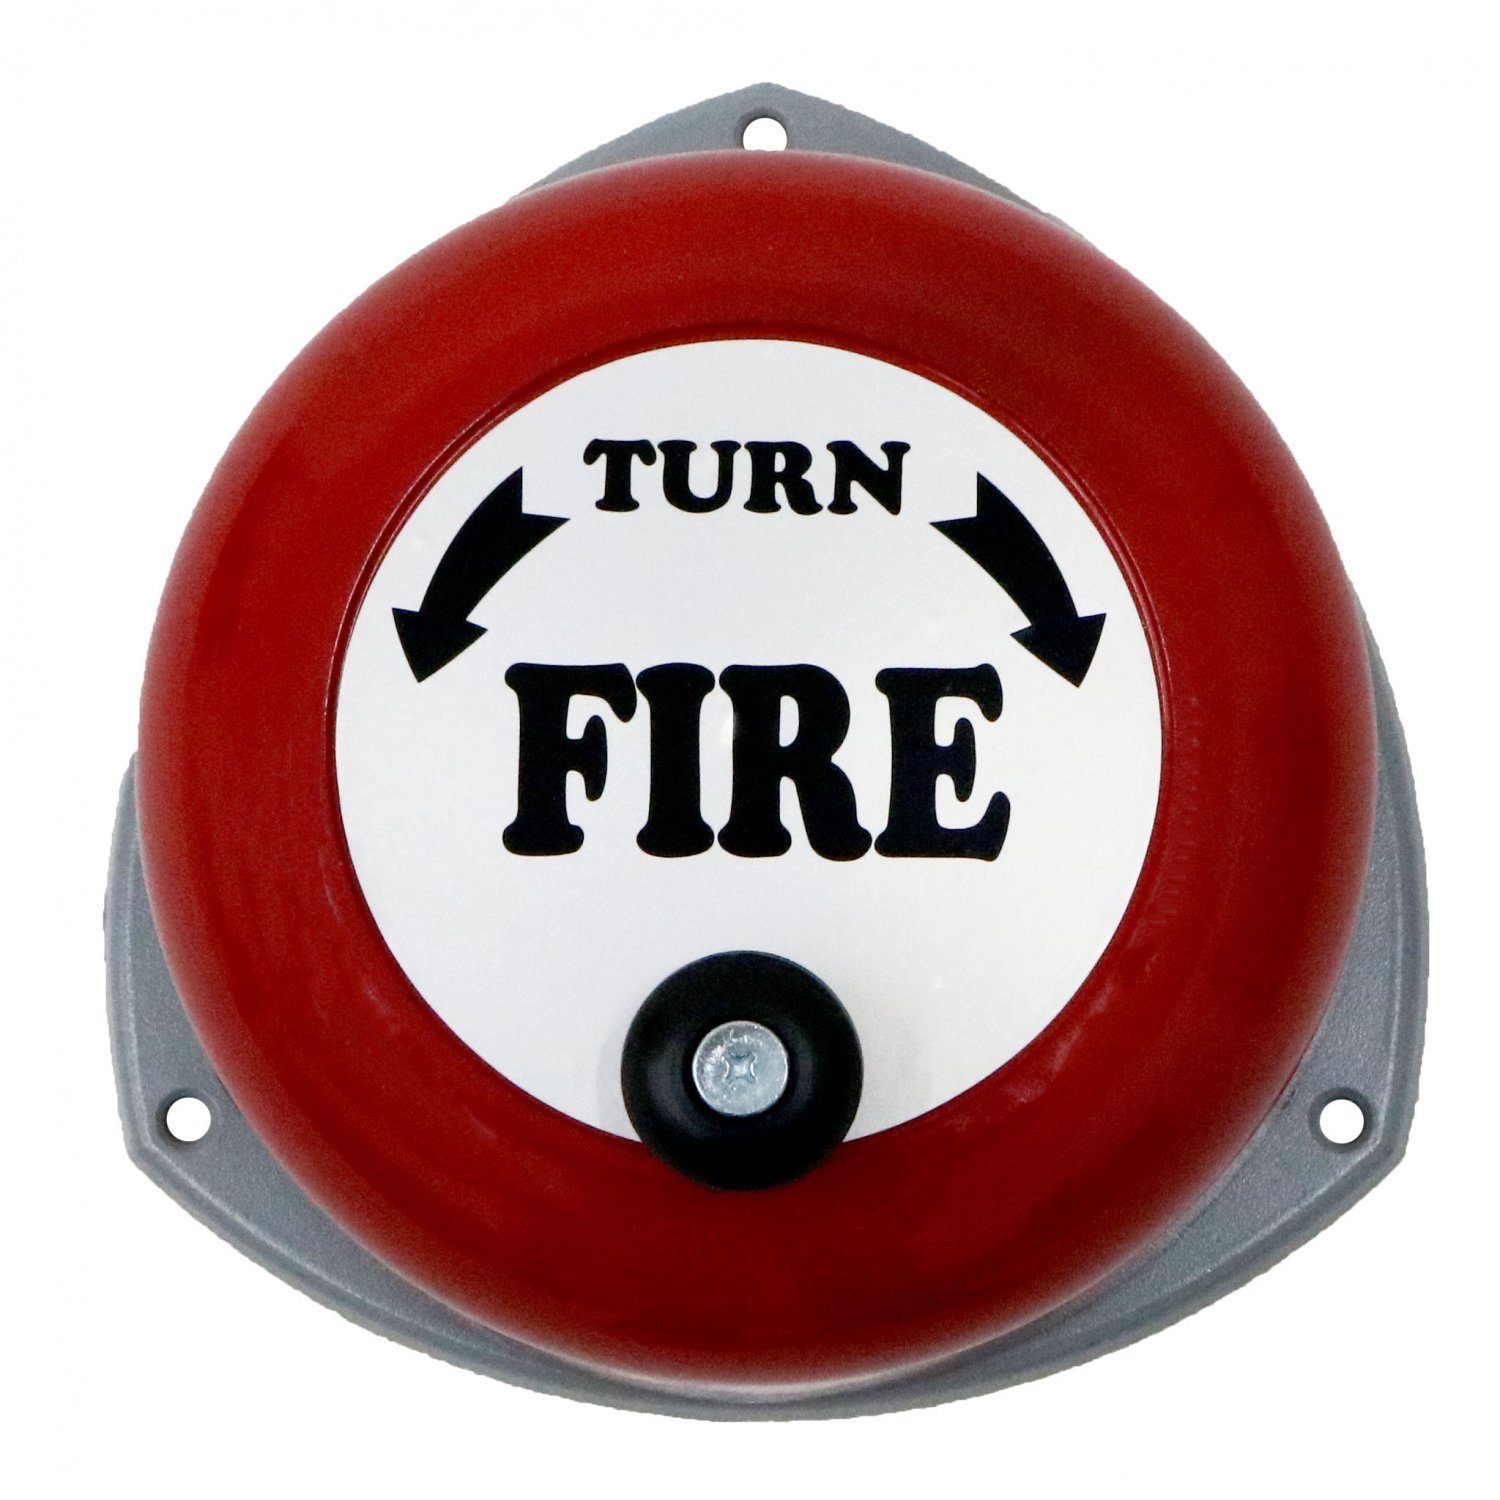 Rotary Hand Fire Safety Bell Manual Alarm